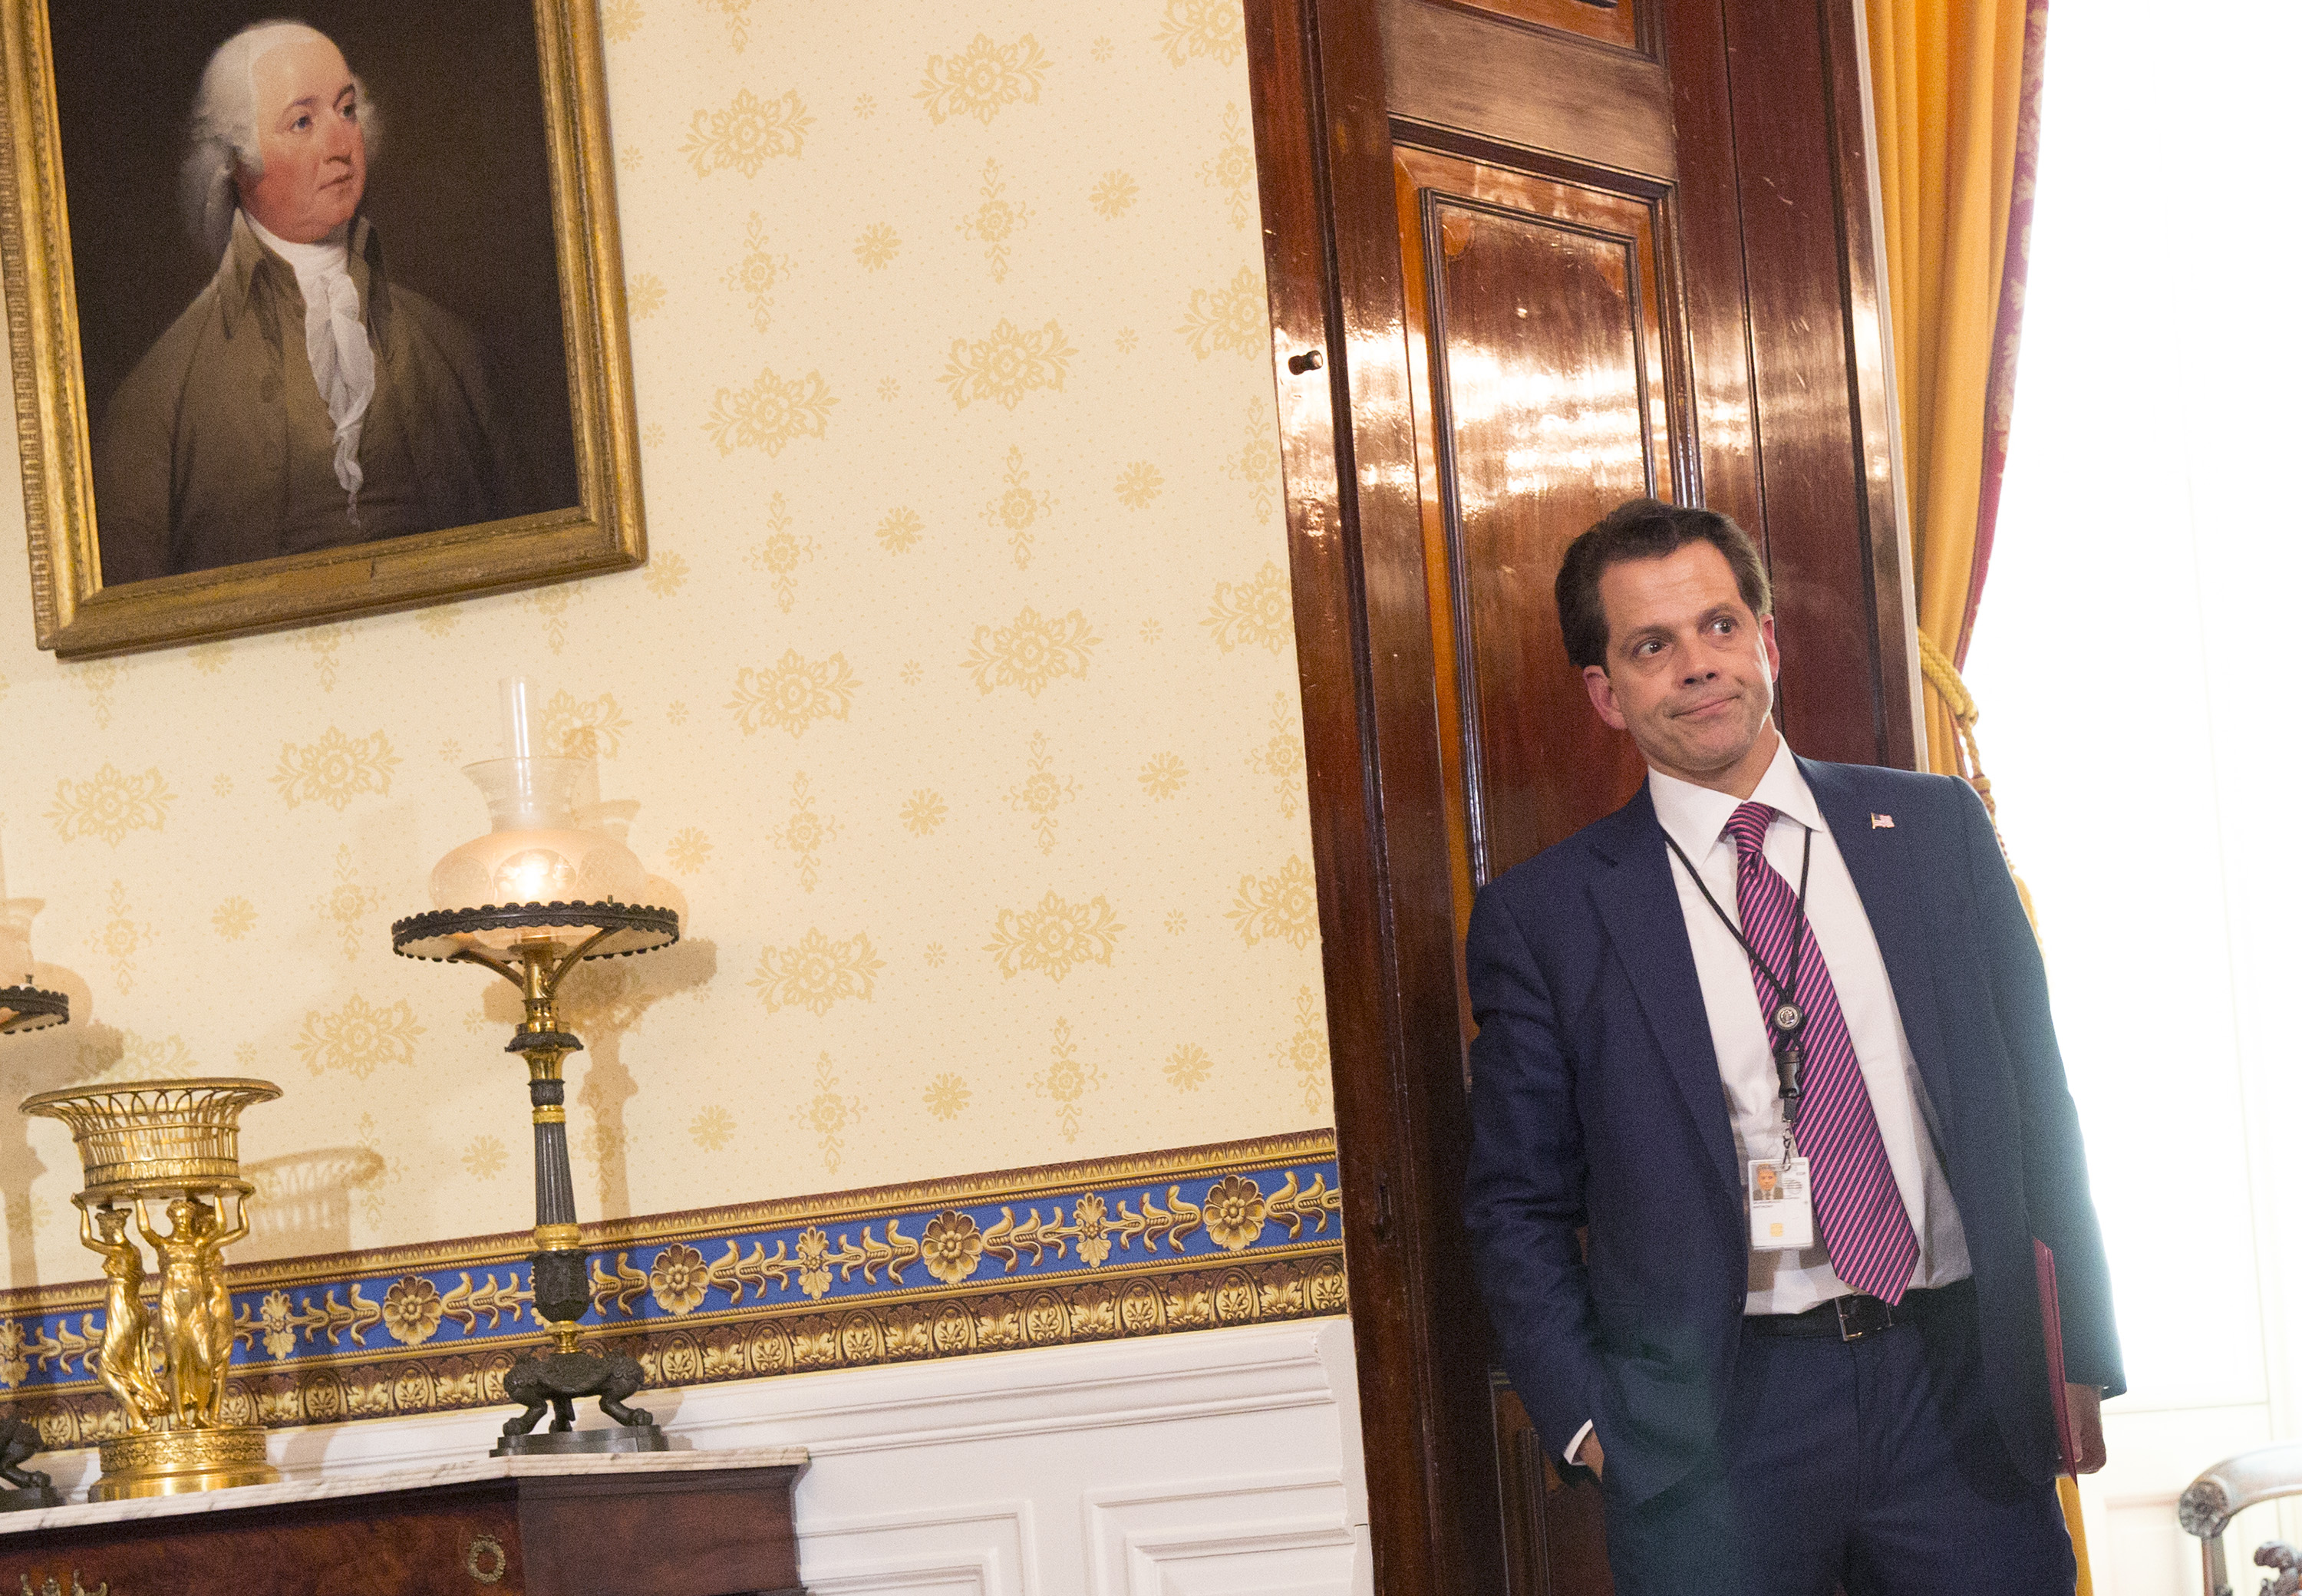 Anthony Scaramucci listens during a press conference on healthcare with U.S. President Donald Trump, not pictured, in the Blue Room of the White House in Washington, D.C., U.S., on Monday, July 24, 2017.